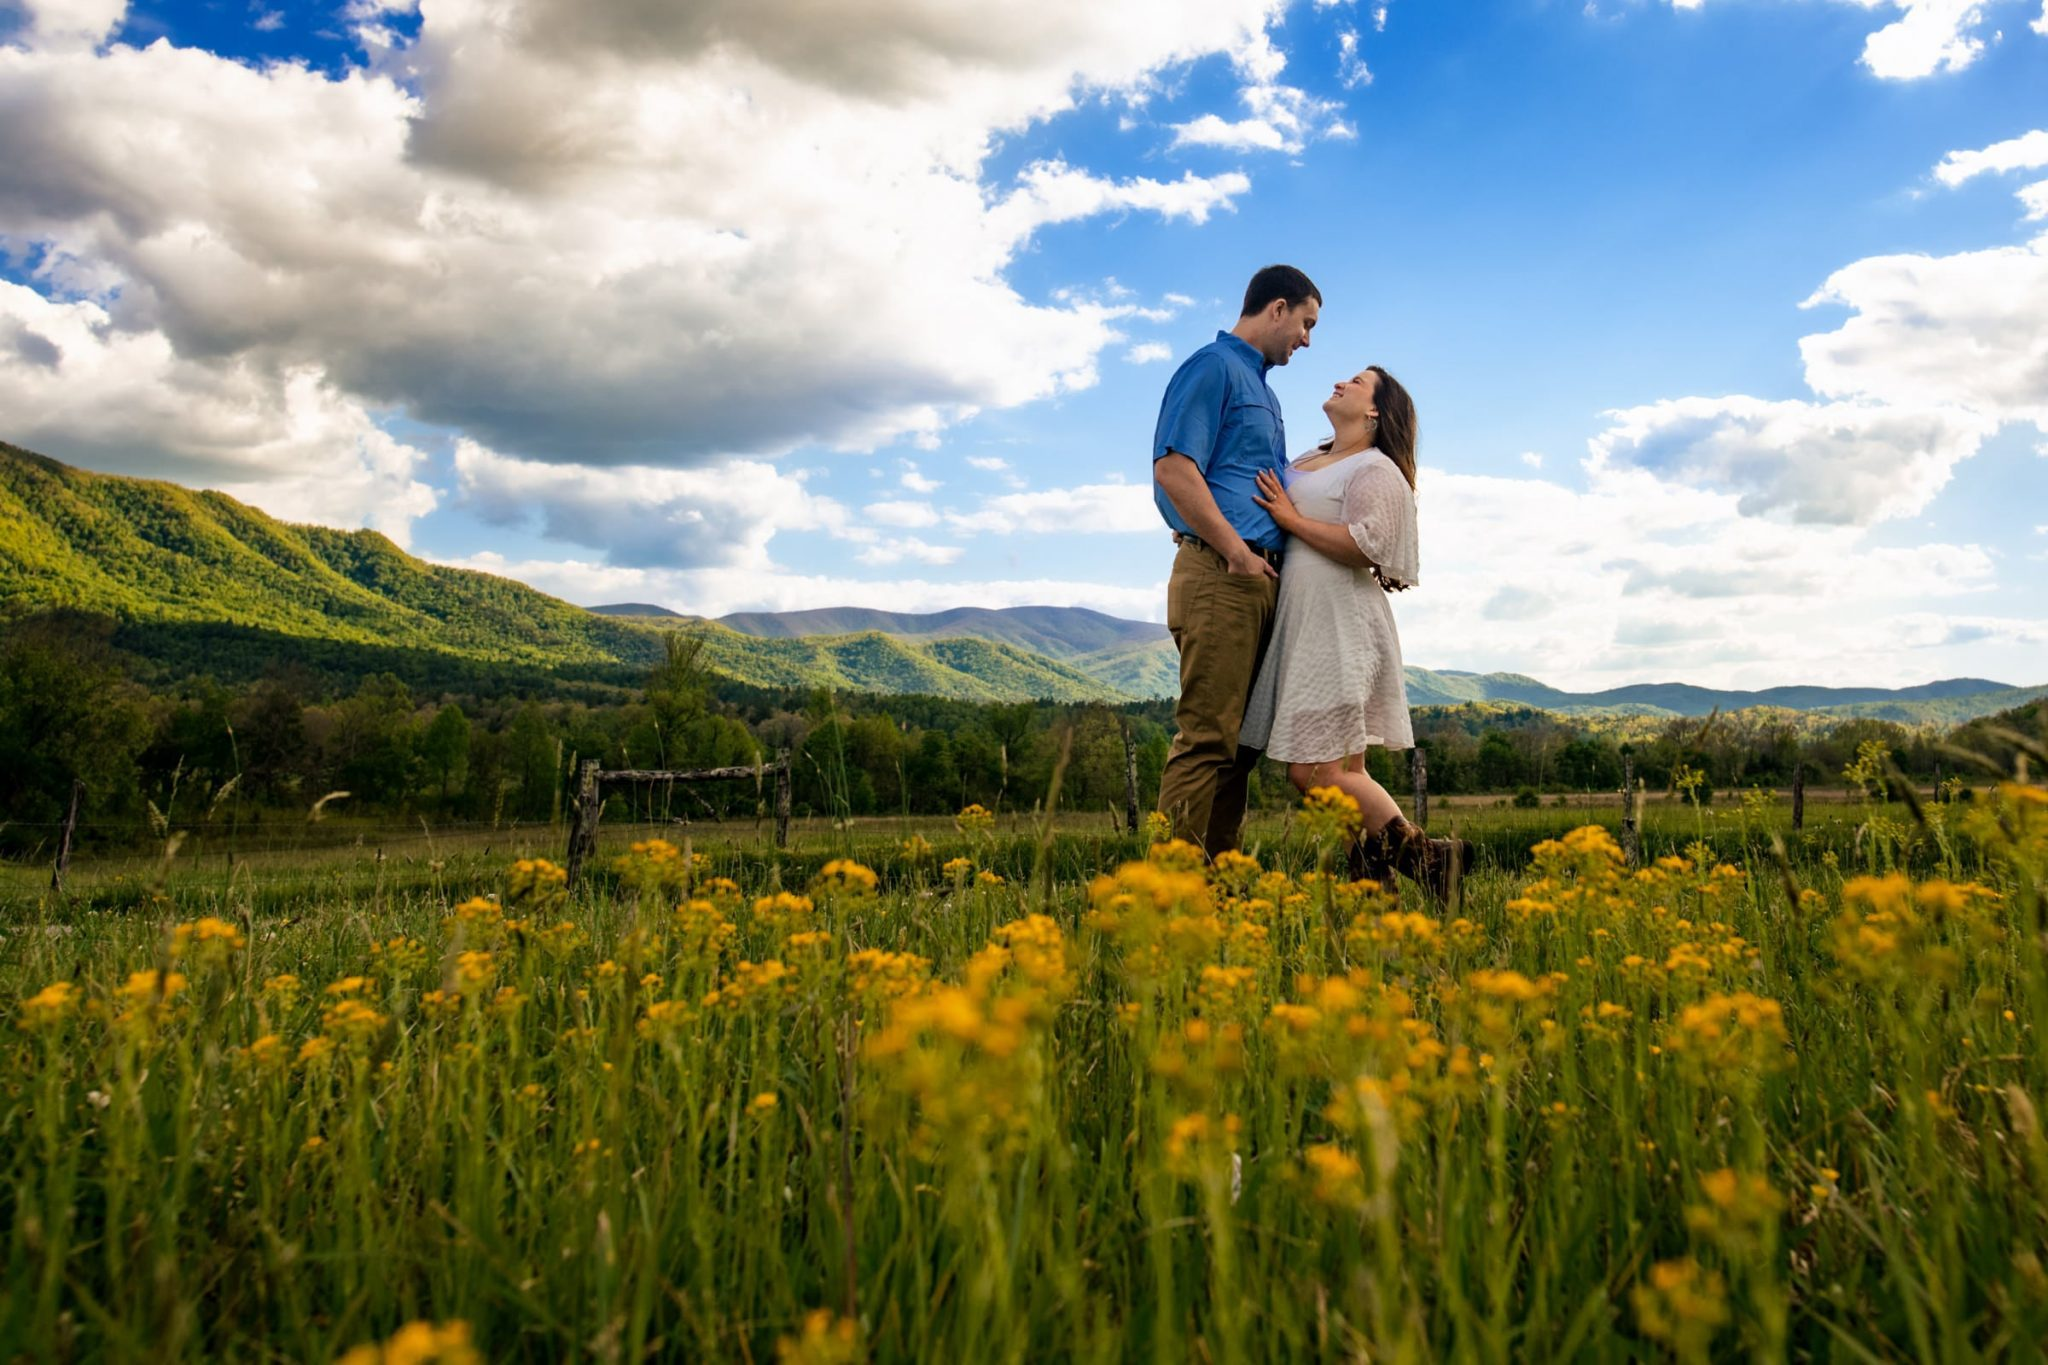 Couple holding hands during an engagement photoshoot in among flowers